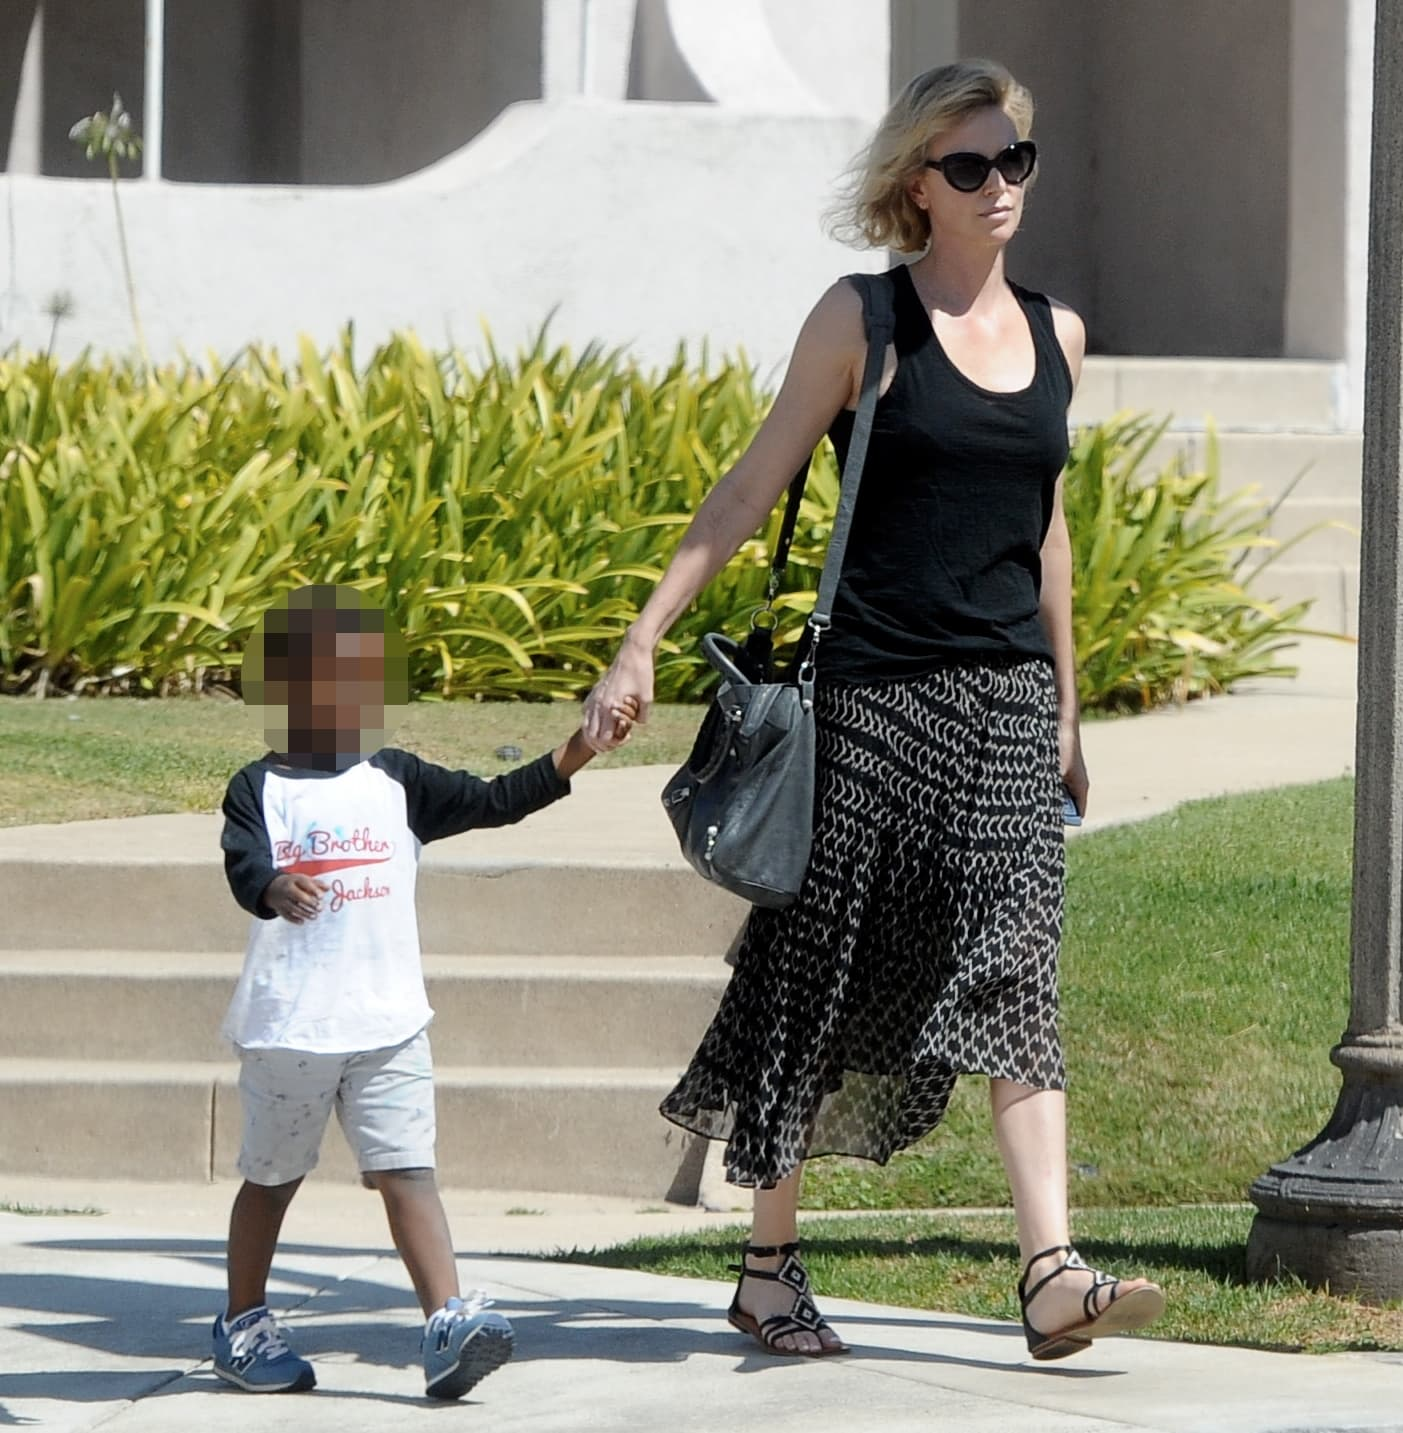 Actress Charlize Theron out with her transgender daughter Jackson Theron in Los Angeles